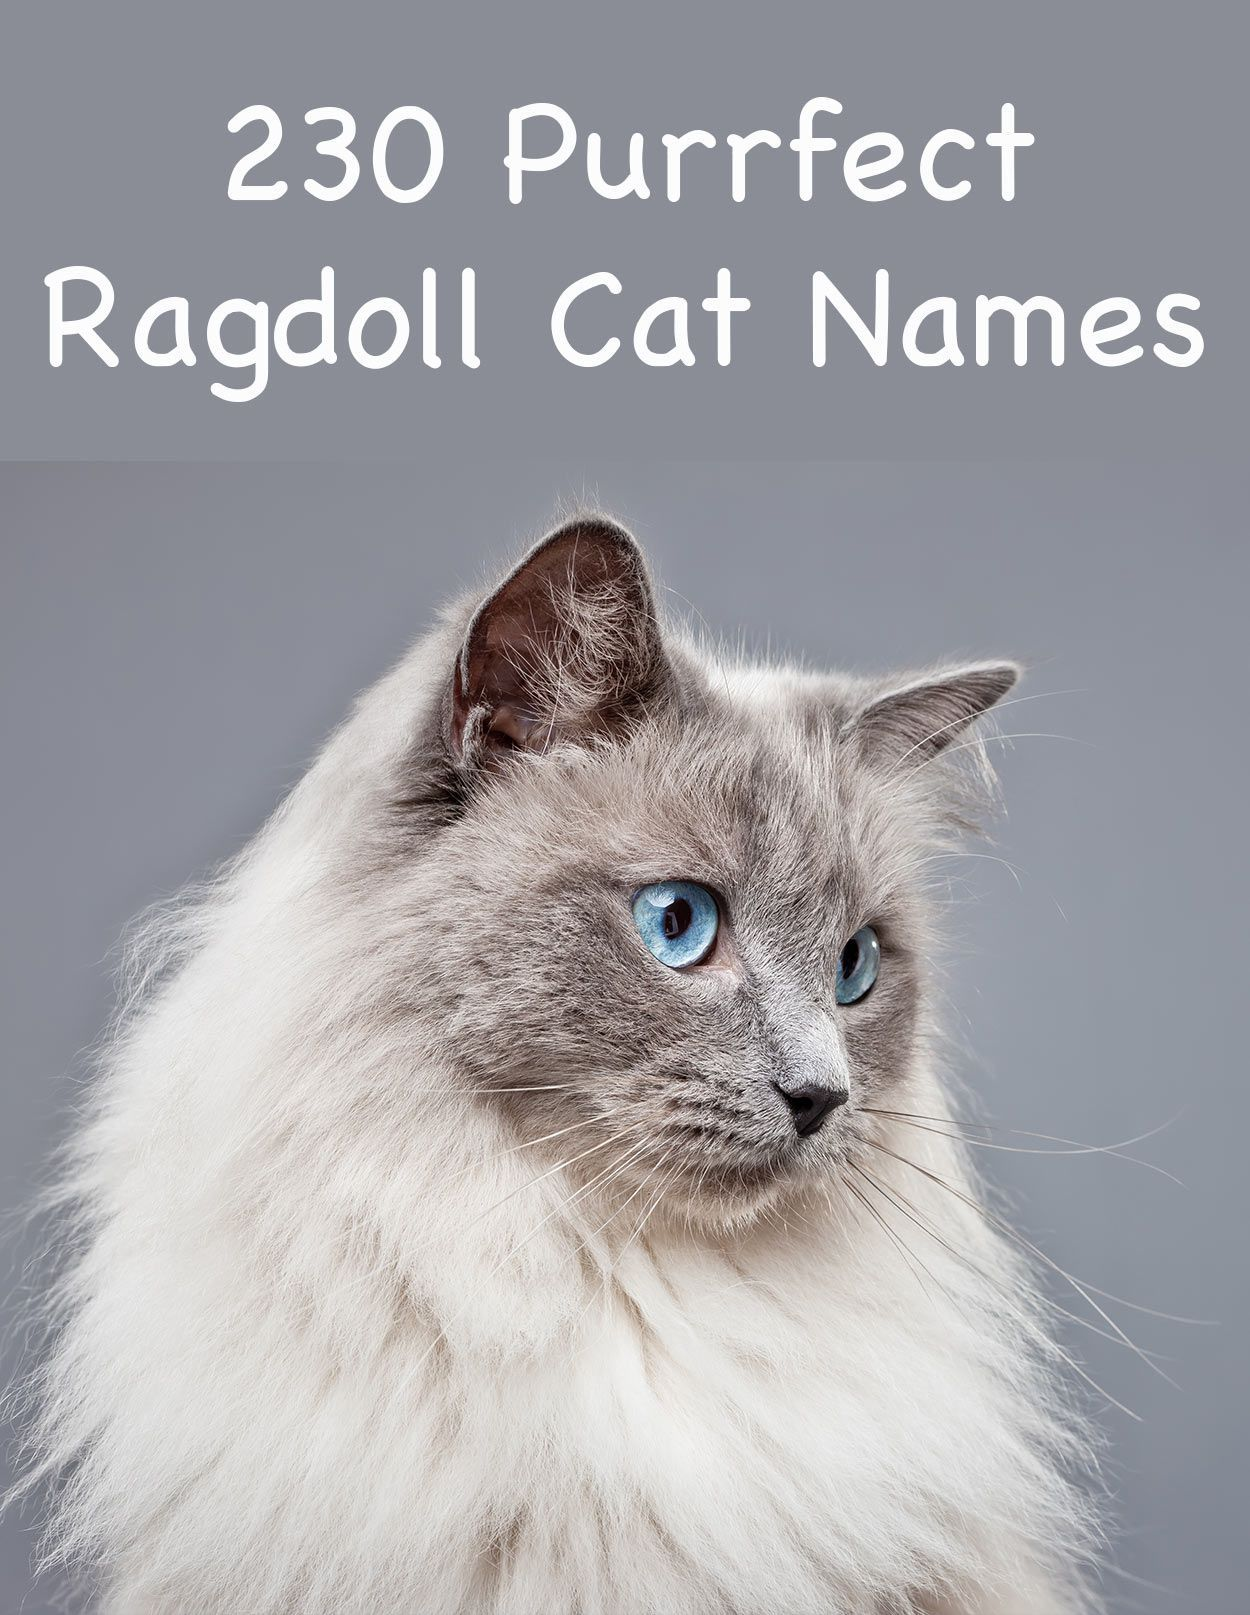 230 Ragdoll Cat Names Great Ideas For Naming Your Ragdoll Kitten Ragdoll Kitten Cute Cat Names Cat Names